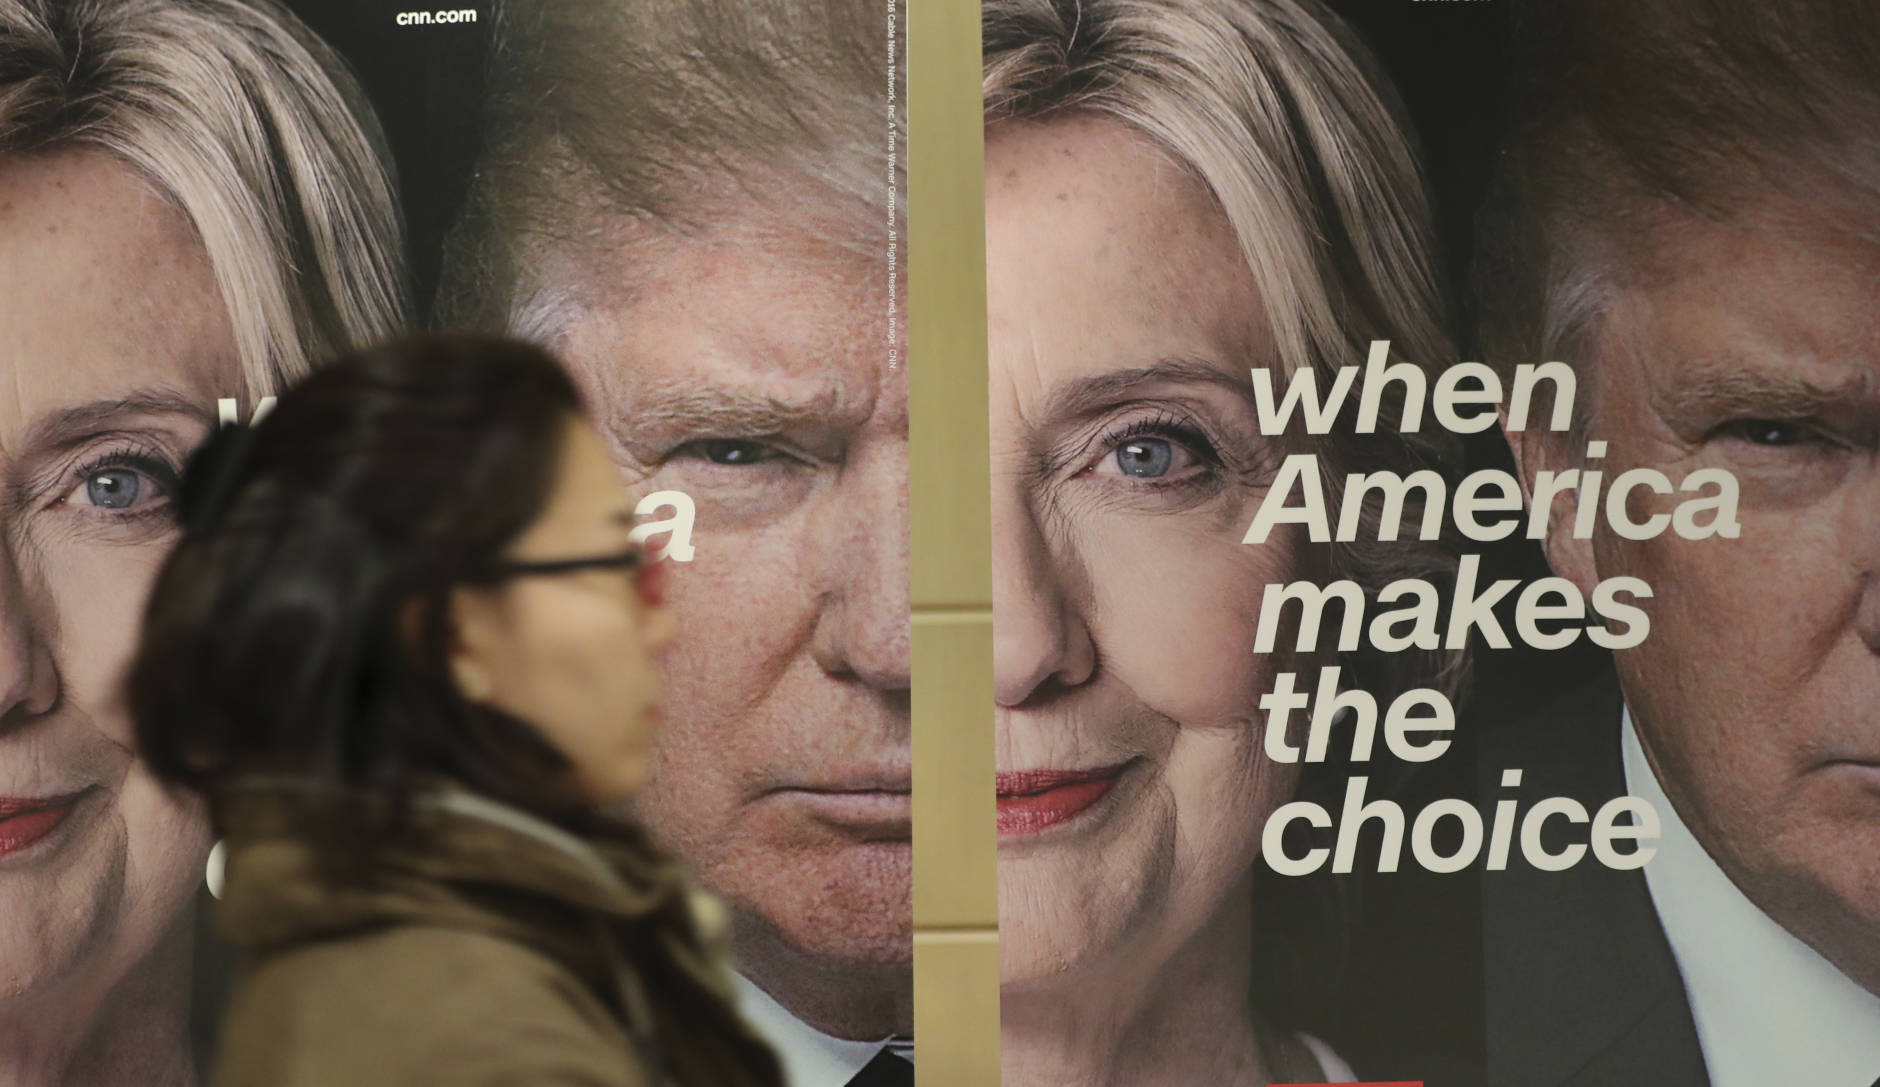 Russian intervention in us election was no one off irish times - Russian Intervention In Us Election Was No One Off Irish Times 41